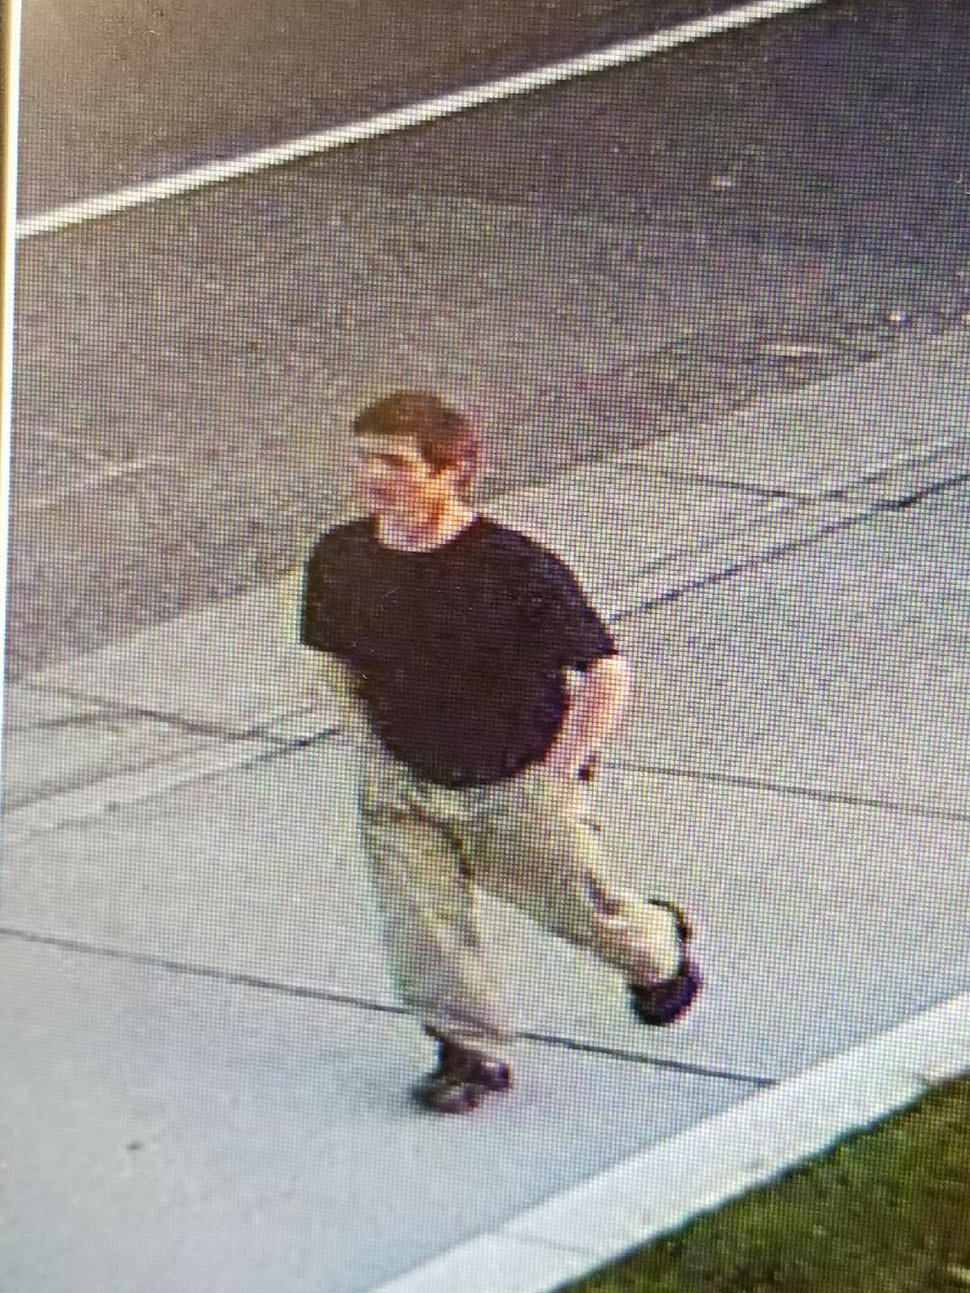 (Courtesy Murray police) Police have released surveillance photos of a man wanted in connection with a shooting in Murray Wednesday evening.